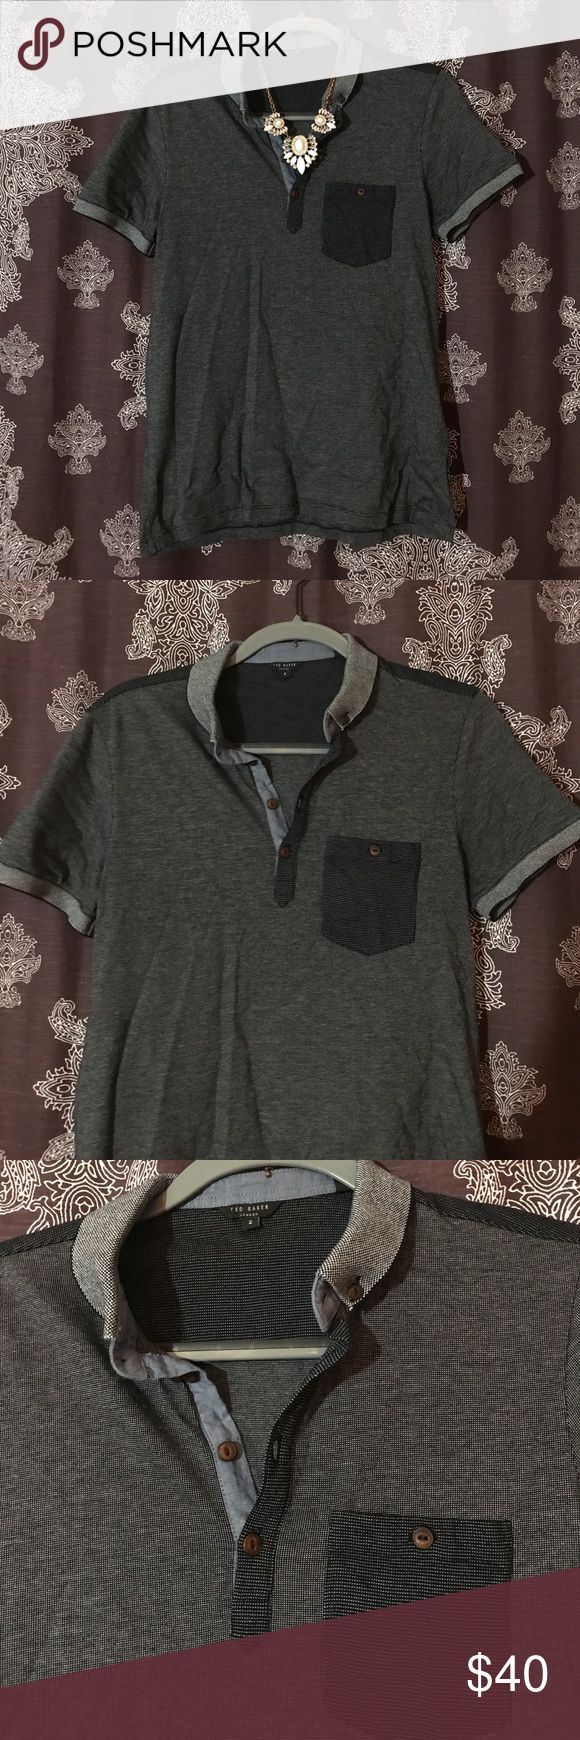 Ted Baker London Navy Blue Men's Polo Size 2 Ted Baker London navy blue collared polo top in a size 2, would easily fit some one who typically wears a size small. Very classic, essential piece. Perfect, like new. Make a reasonable offer or bundle for a great discount. 💓 Ted Baker London Shirts Polos